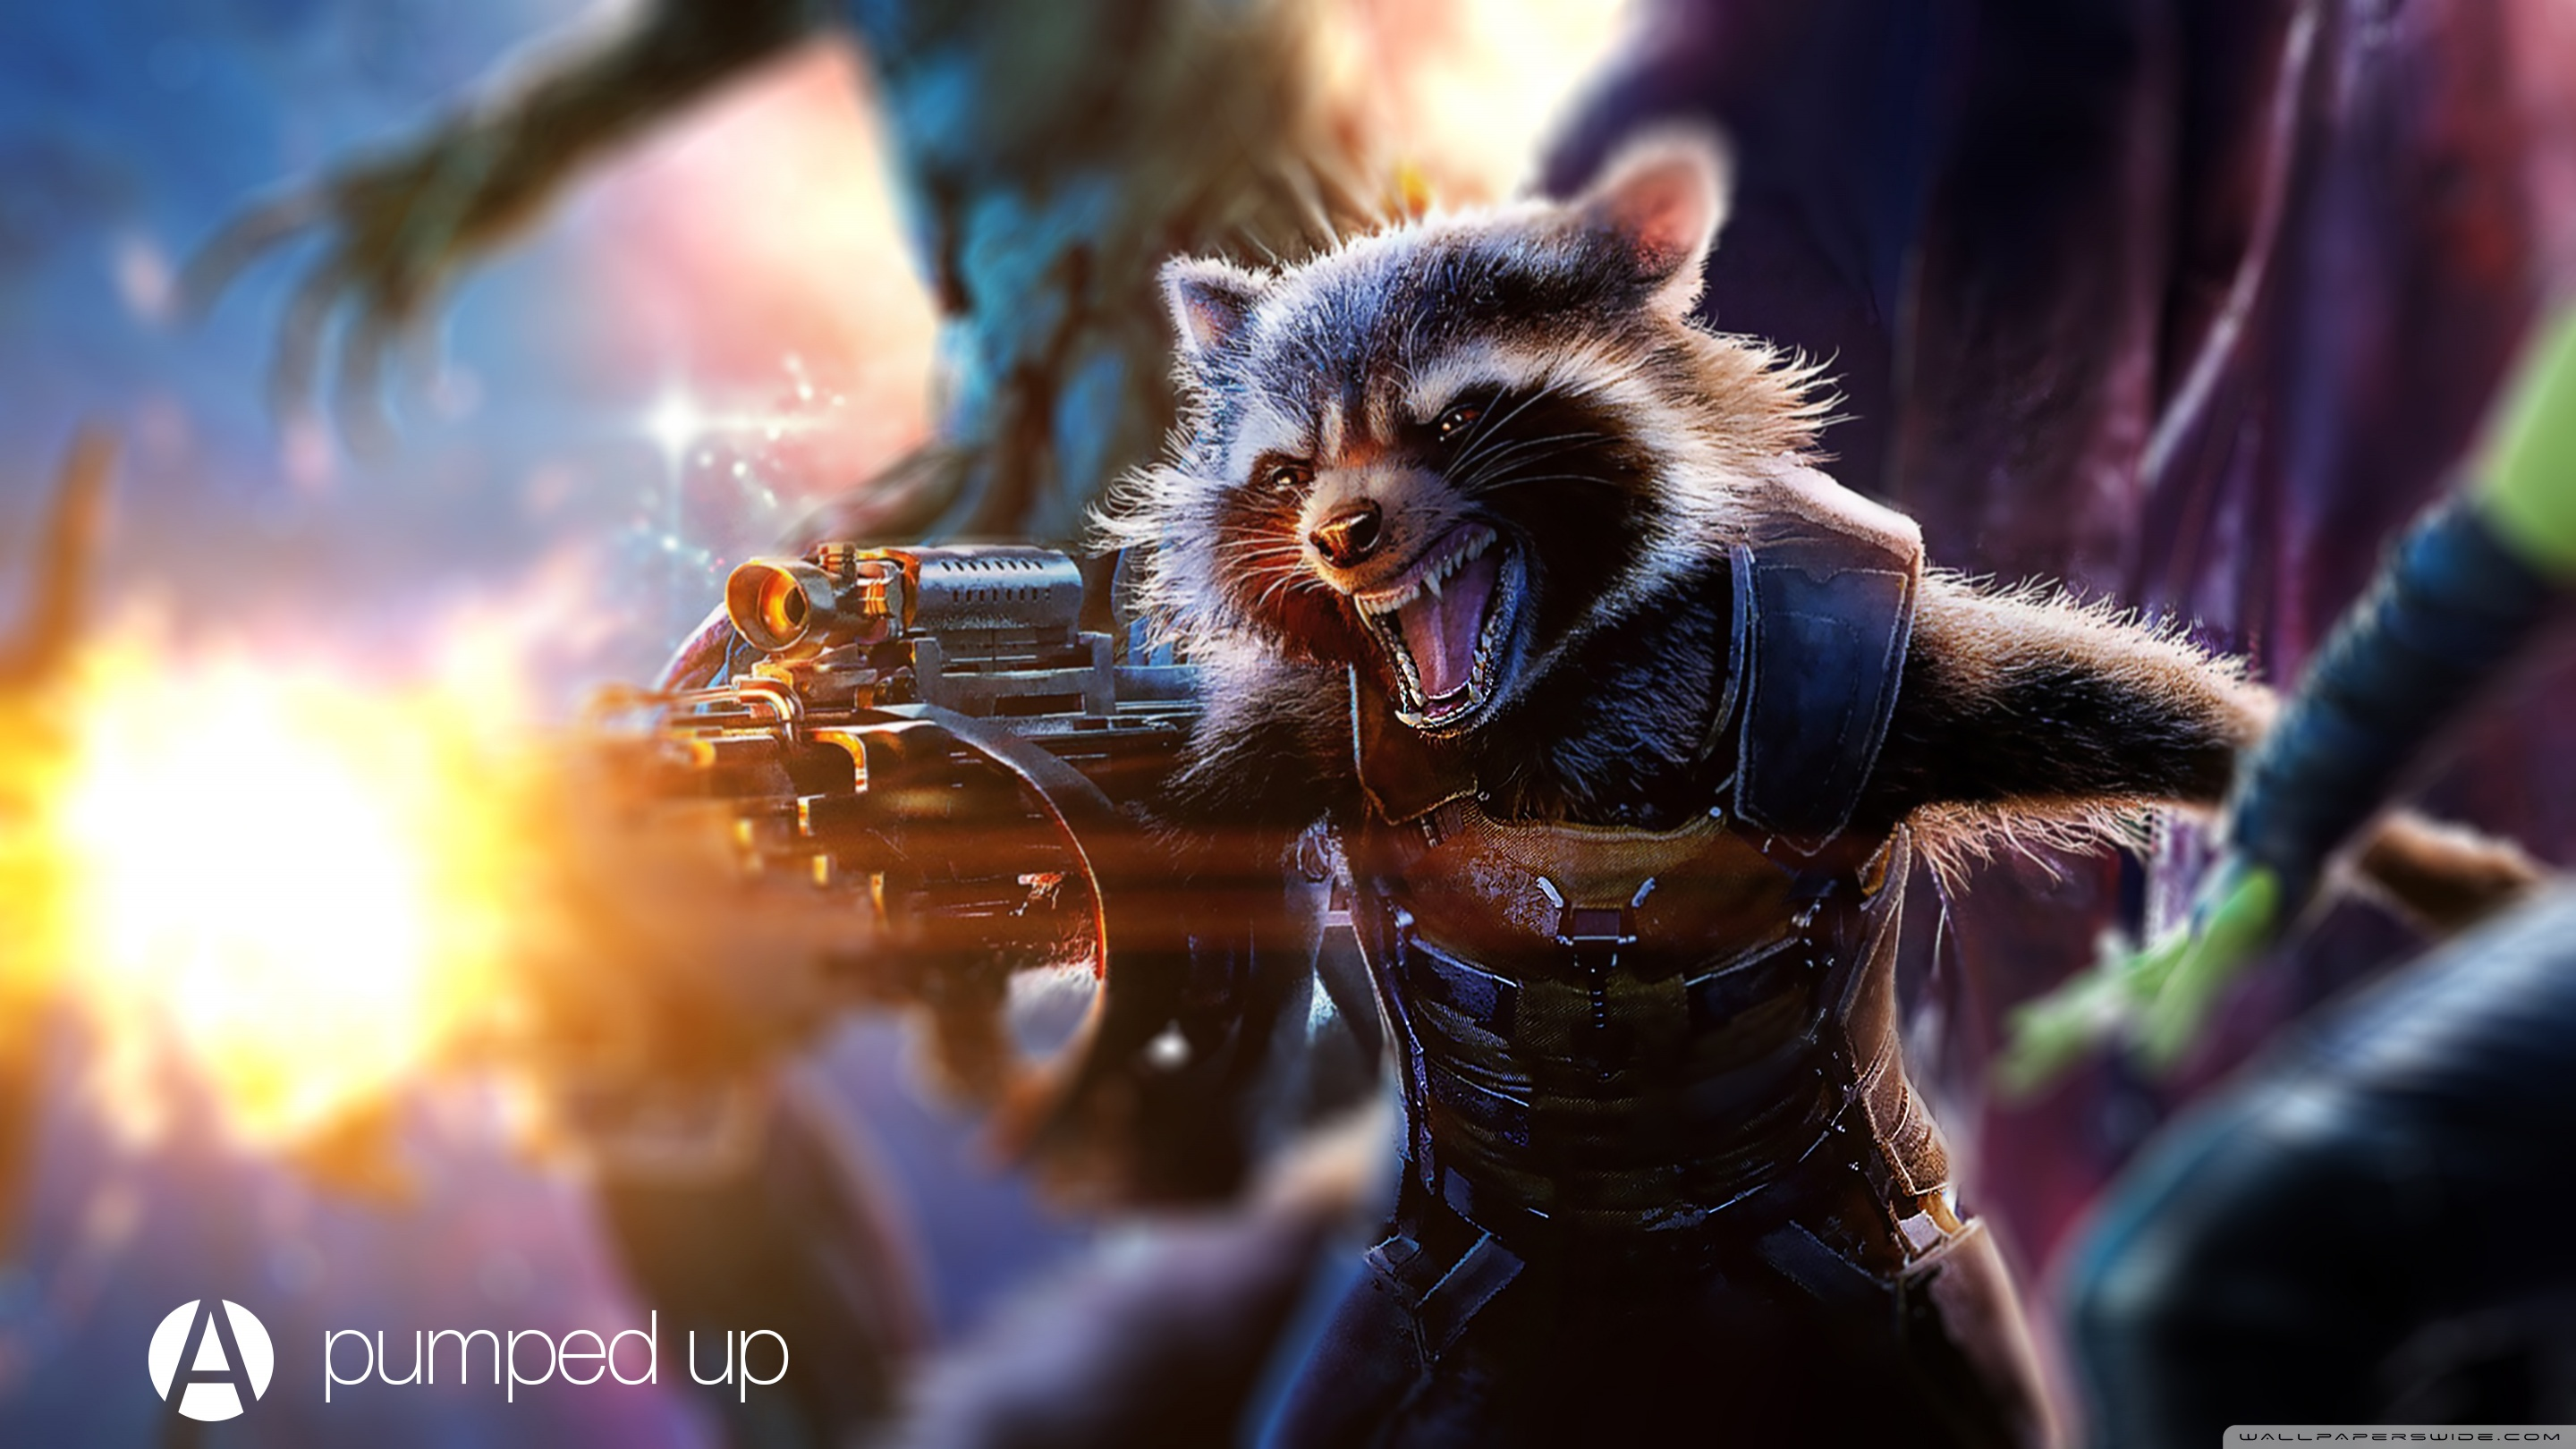 Download Free WallpaperRocket Raccoon Pumped   Awesome Design Studio